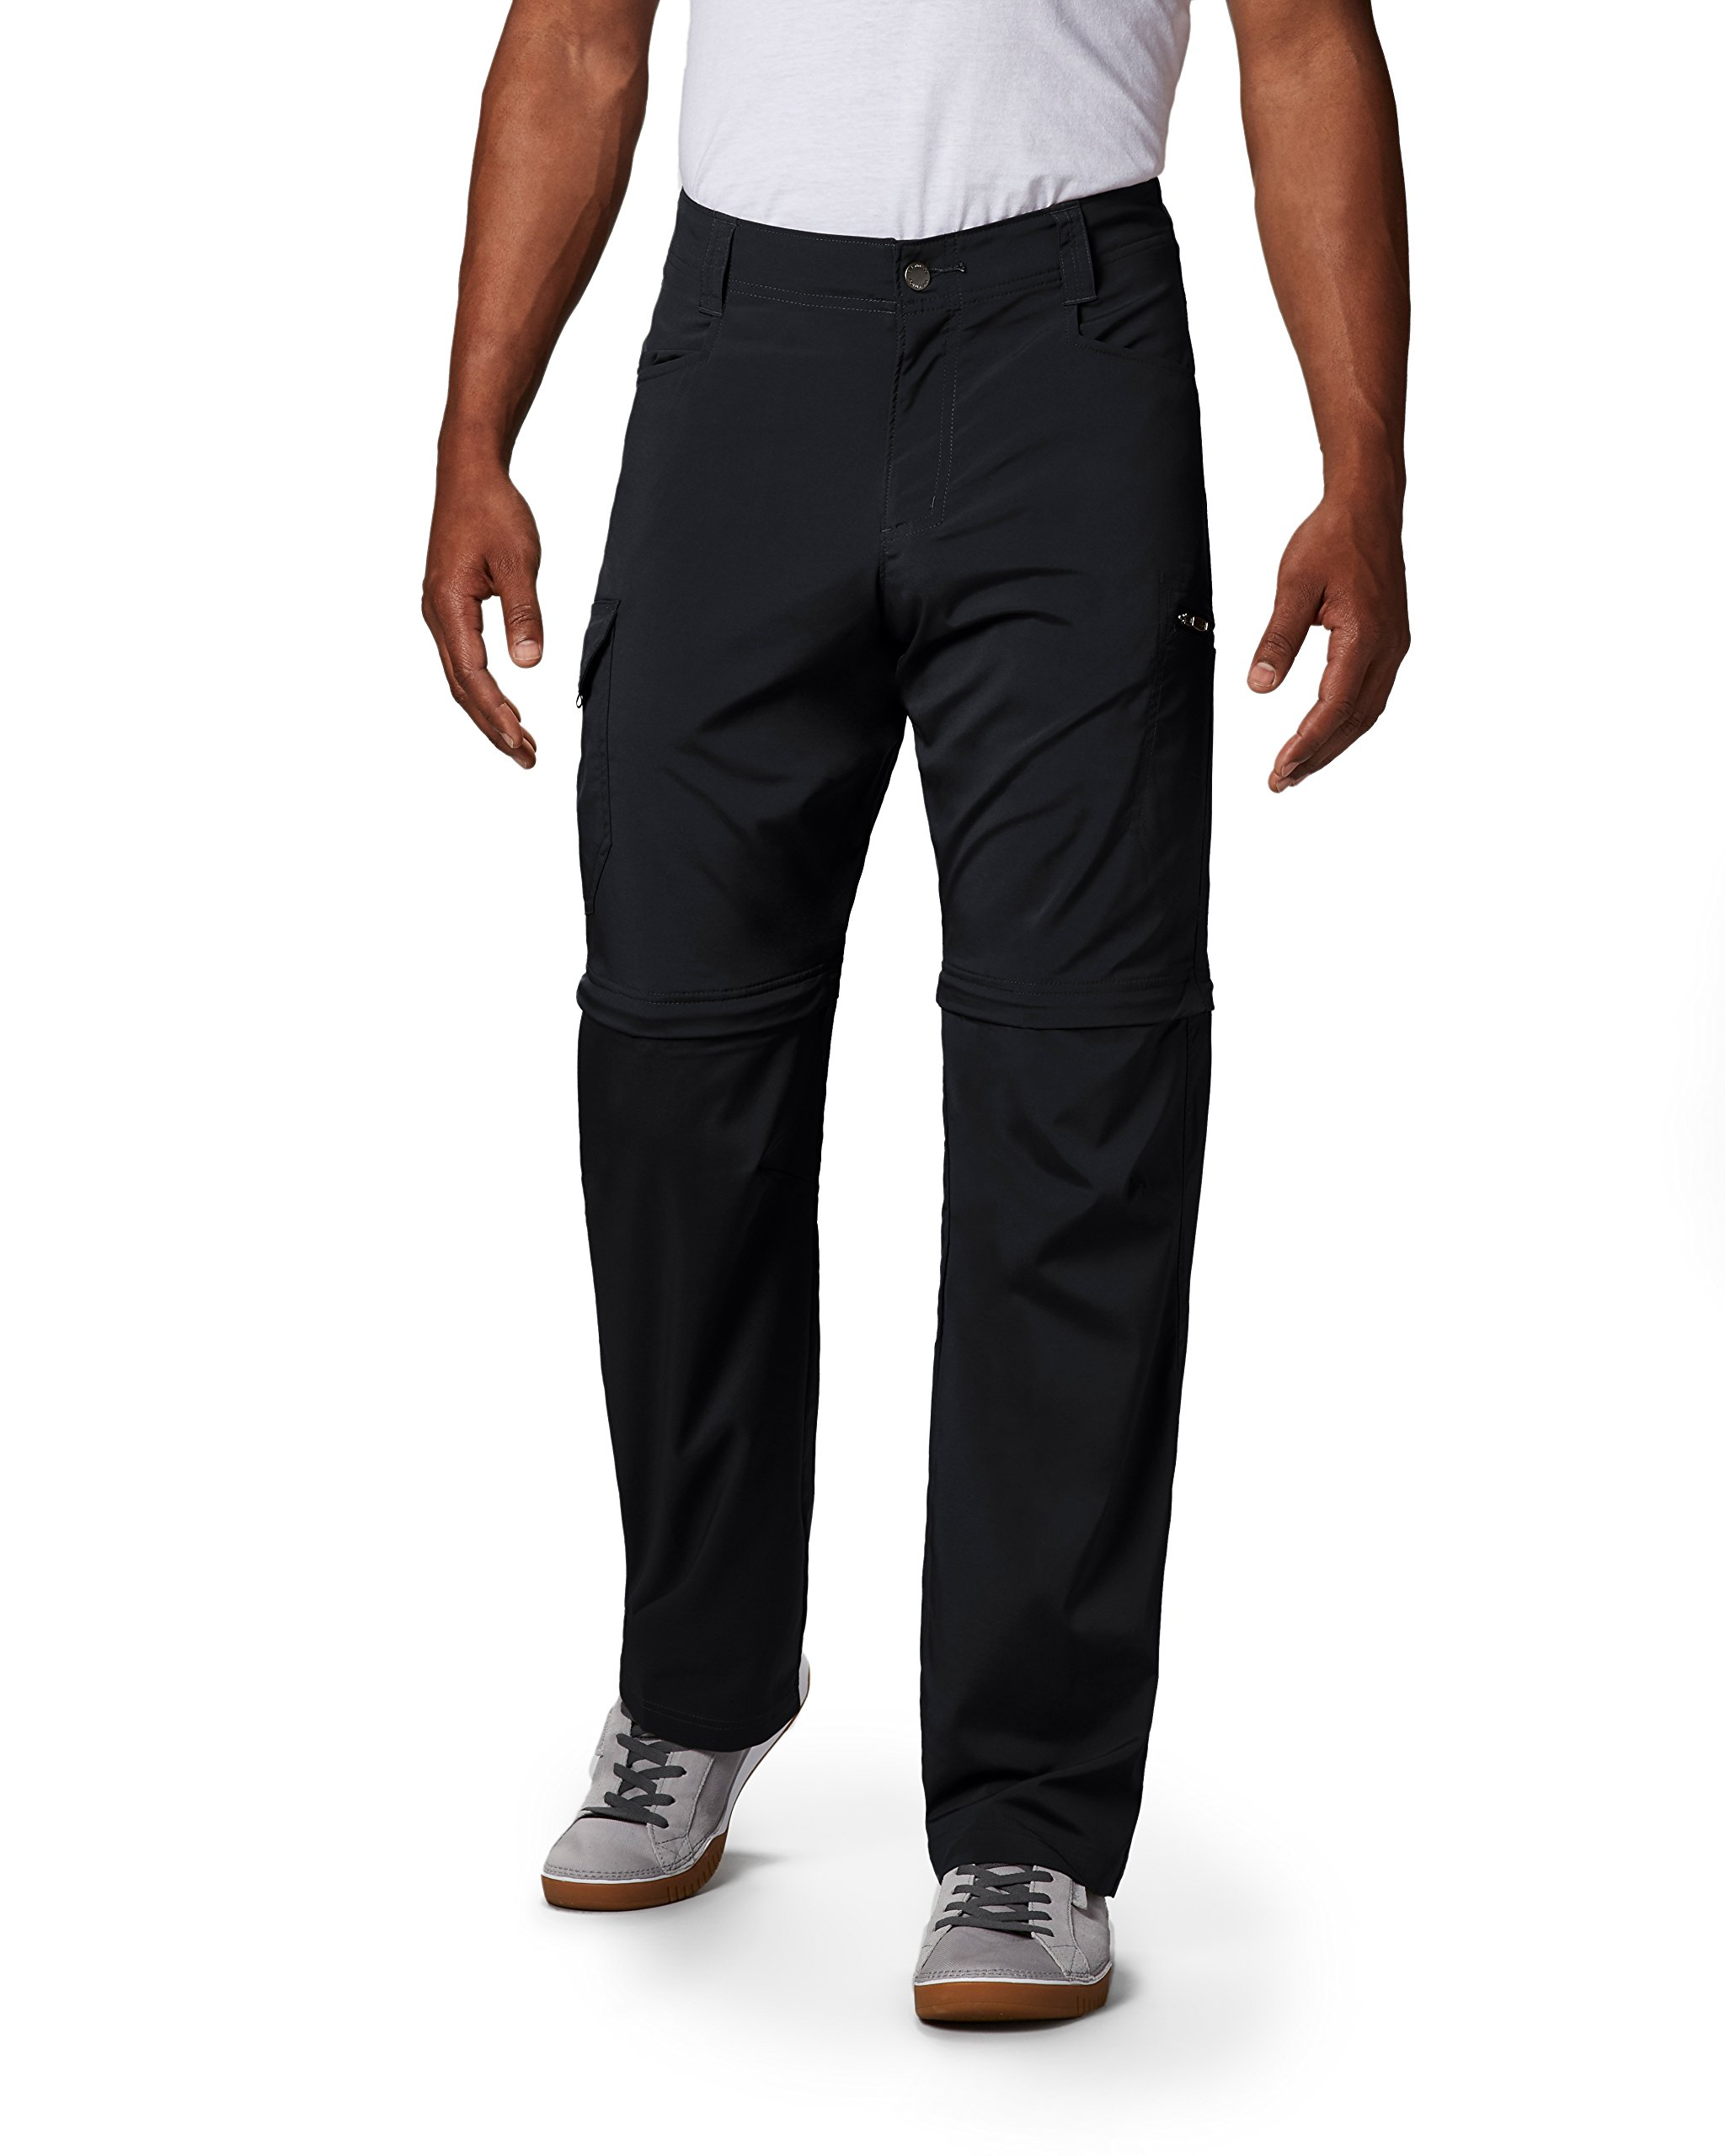 Columbia Men's Silver Ridge Stretch Convertible Pants, Black, 30x28